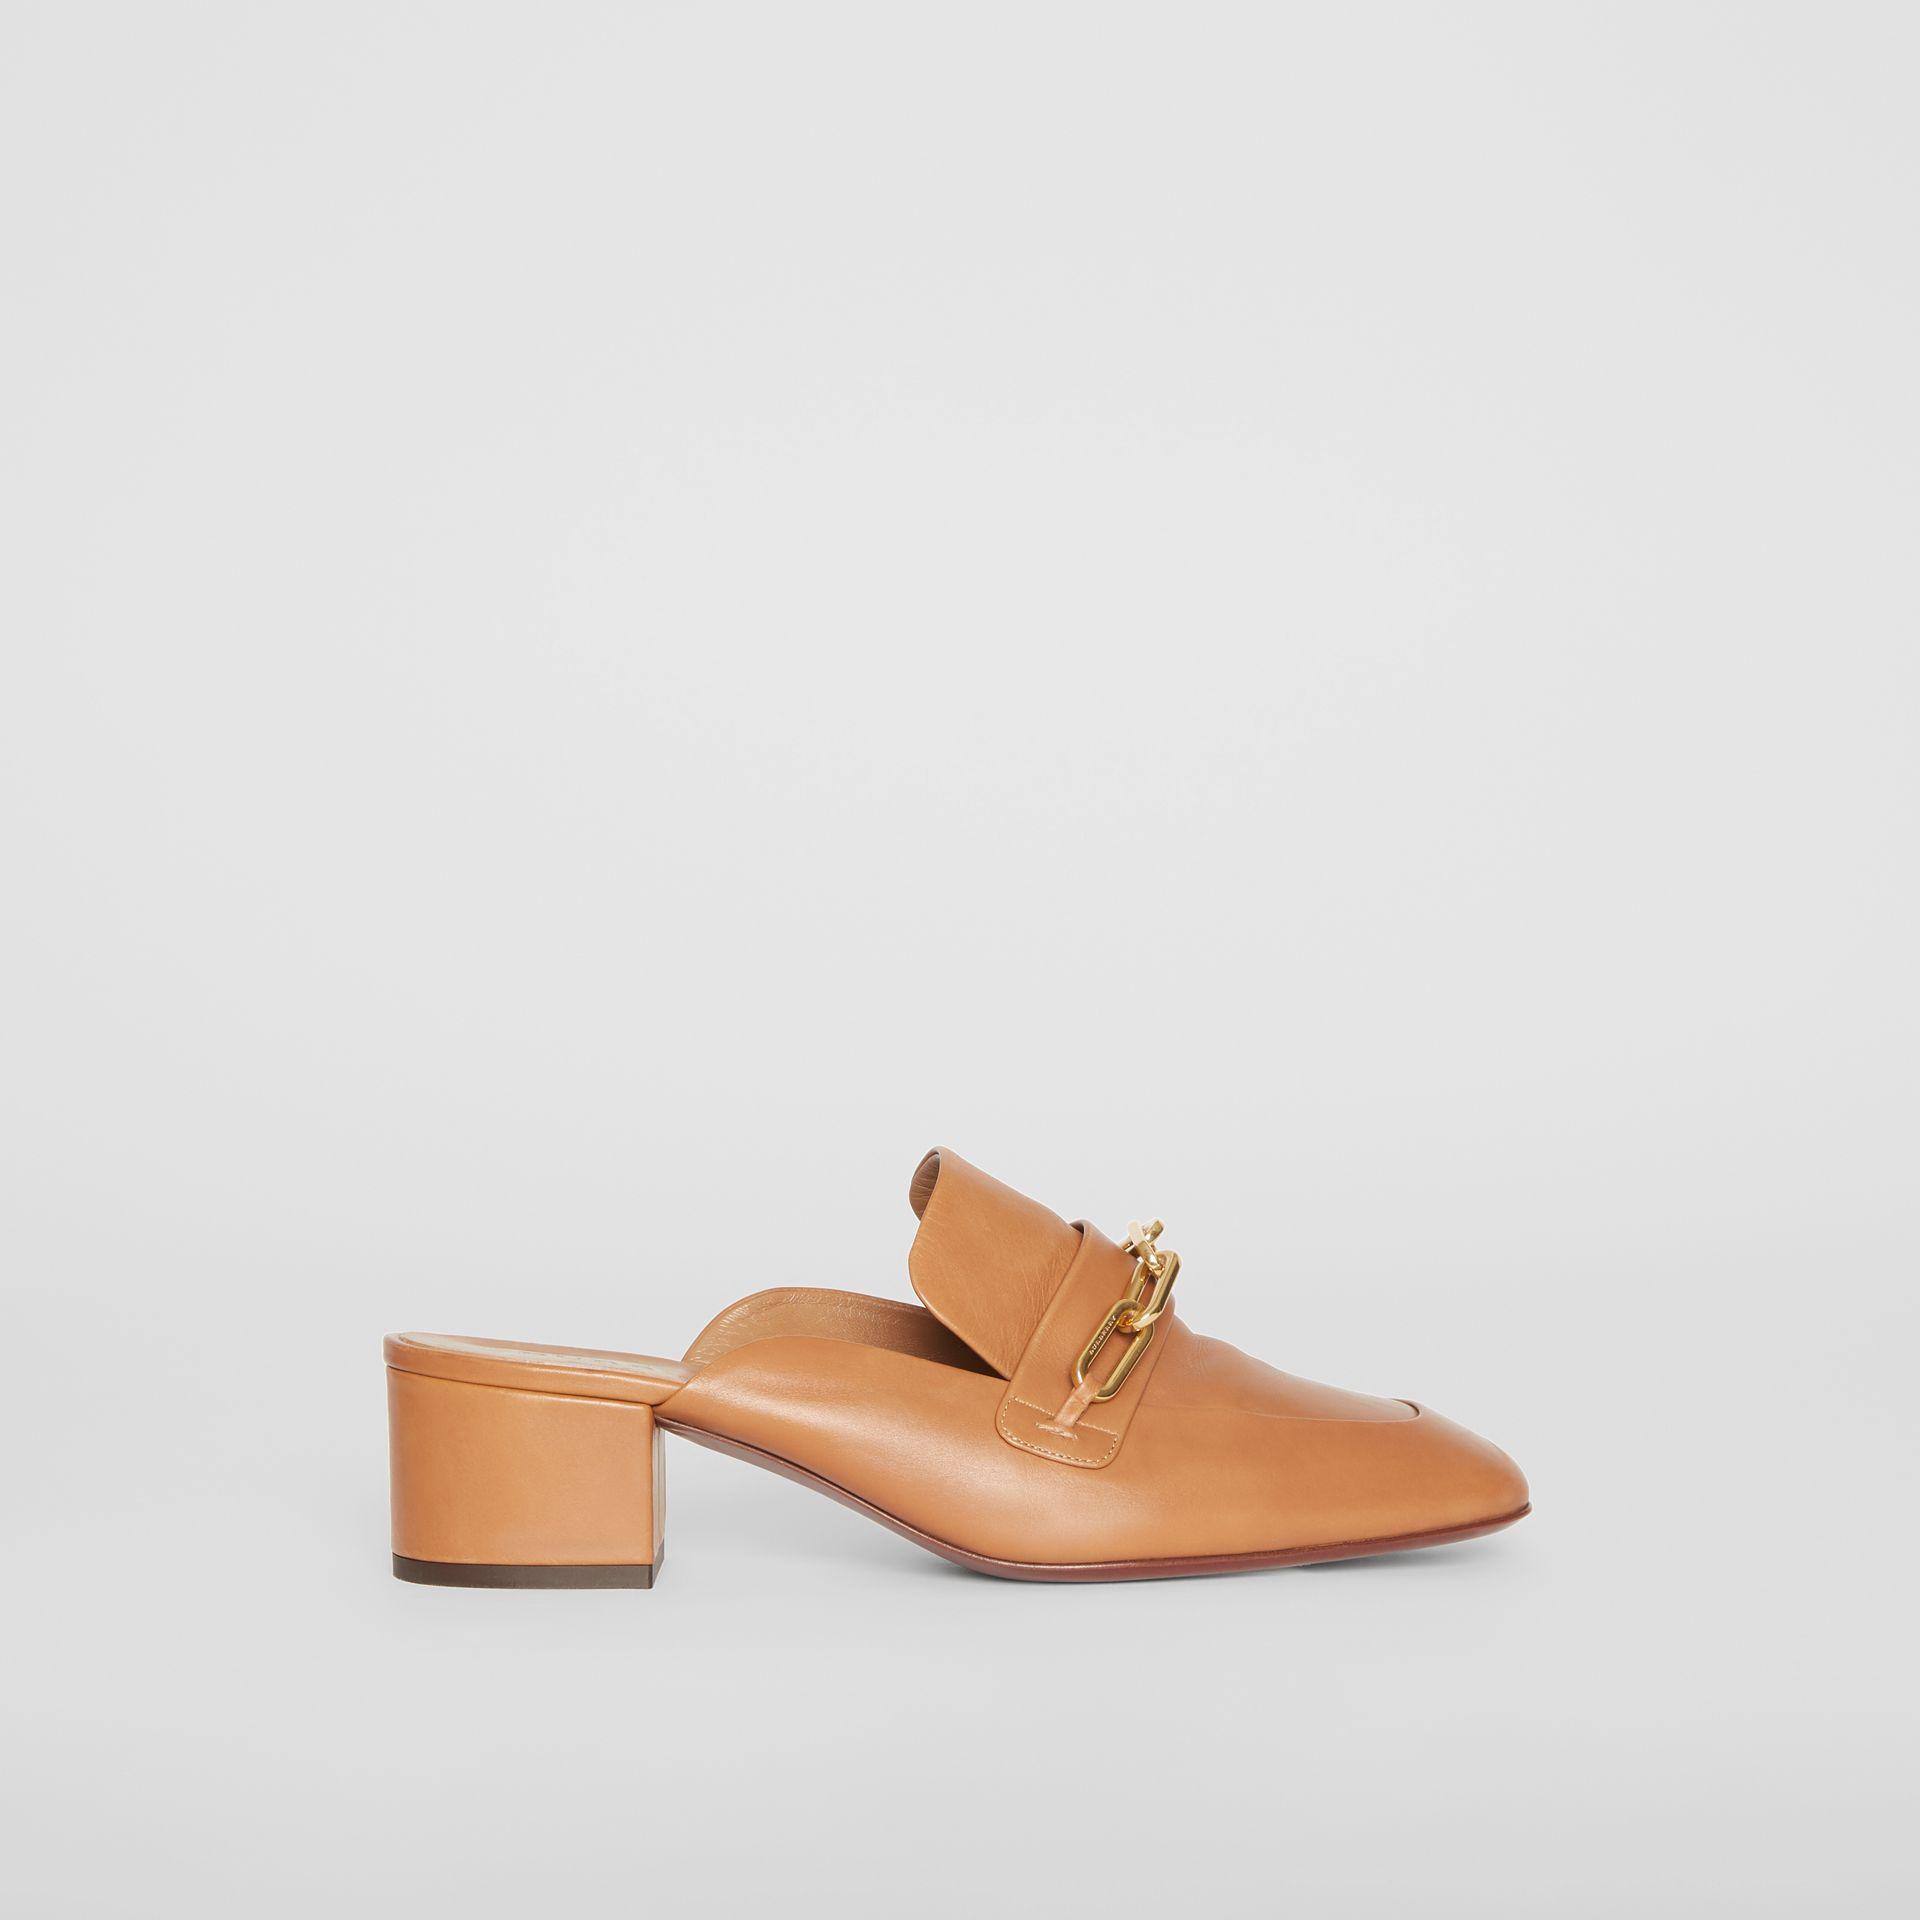 Link Detail Leather Block-heel Mules in Camel - Women | Burberry - gallery image 5